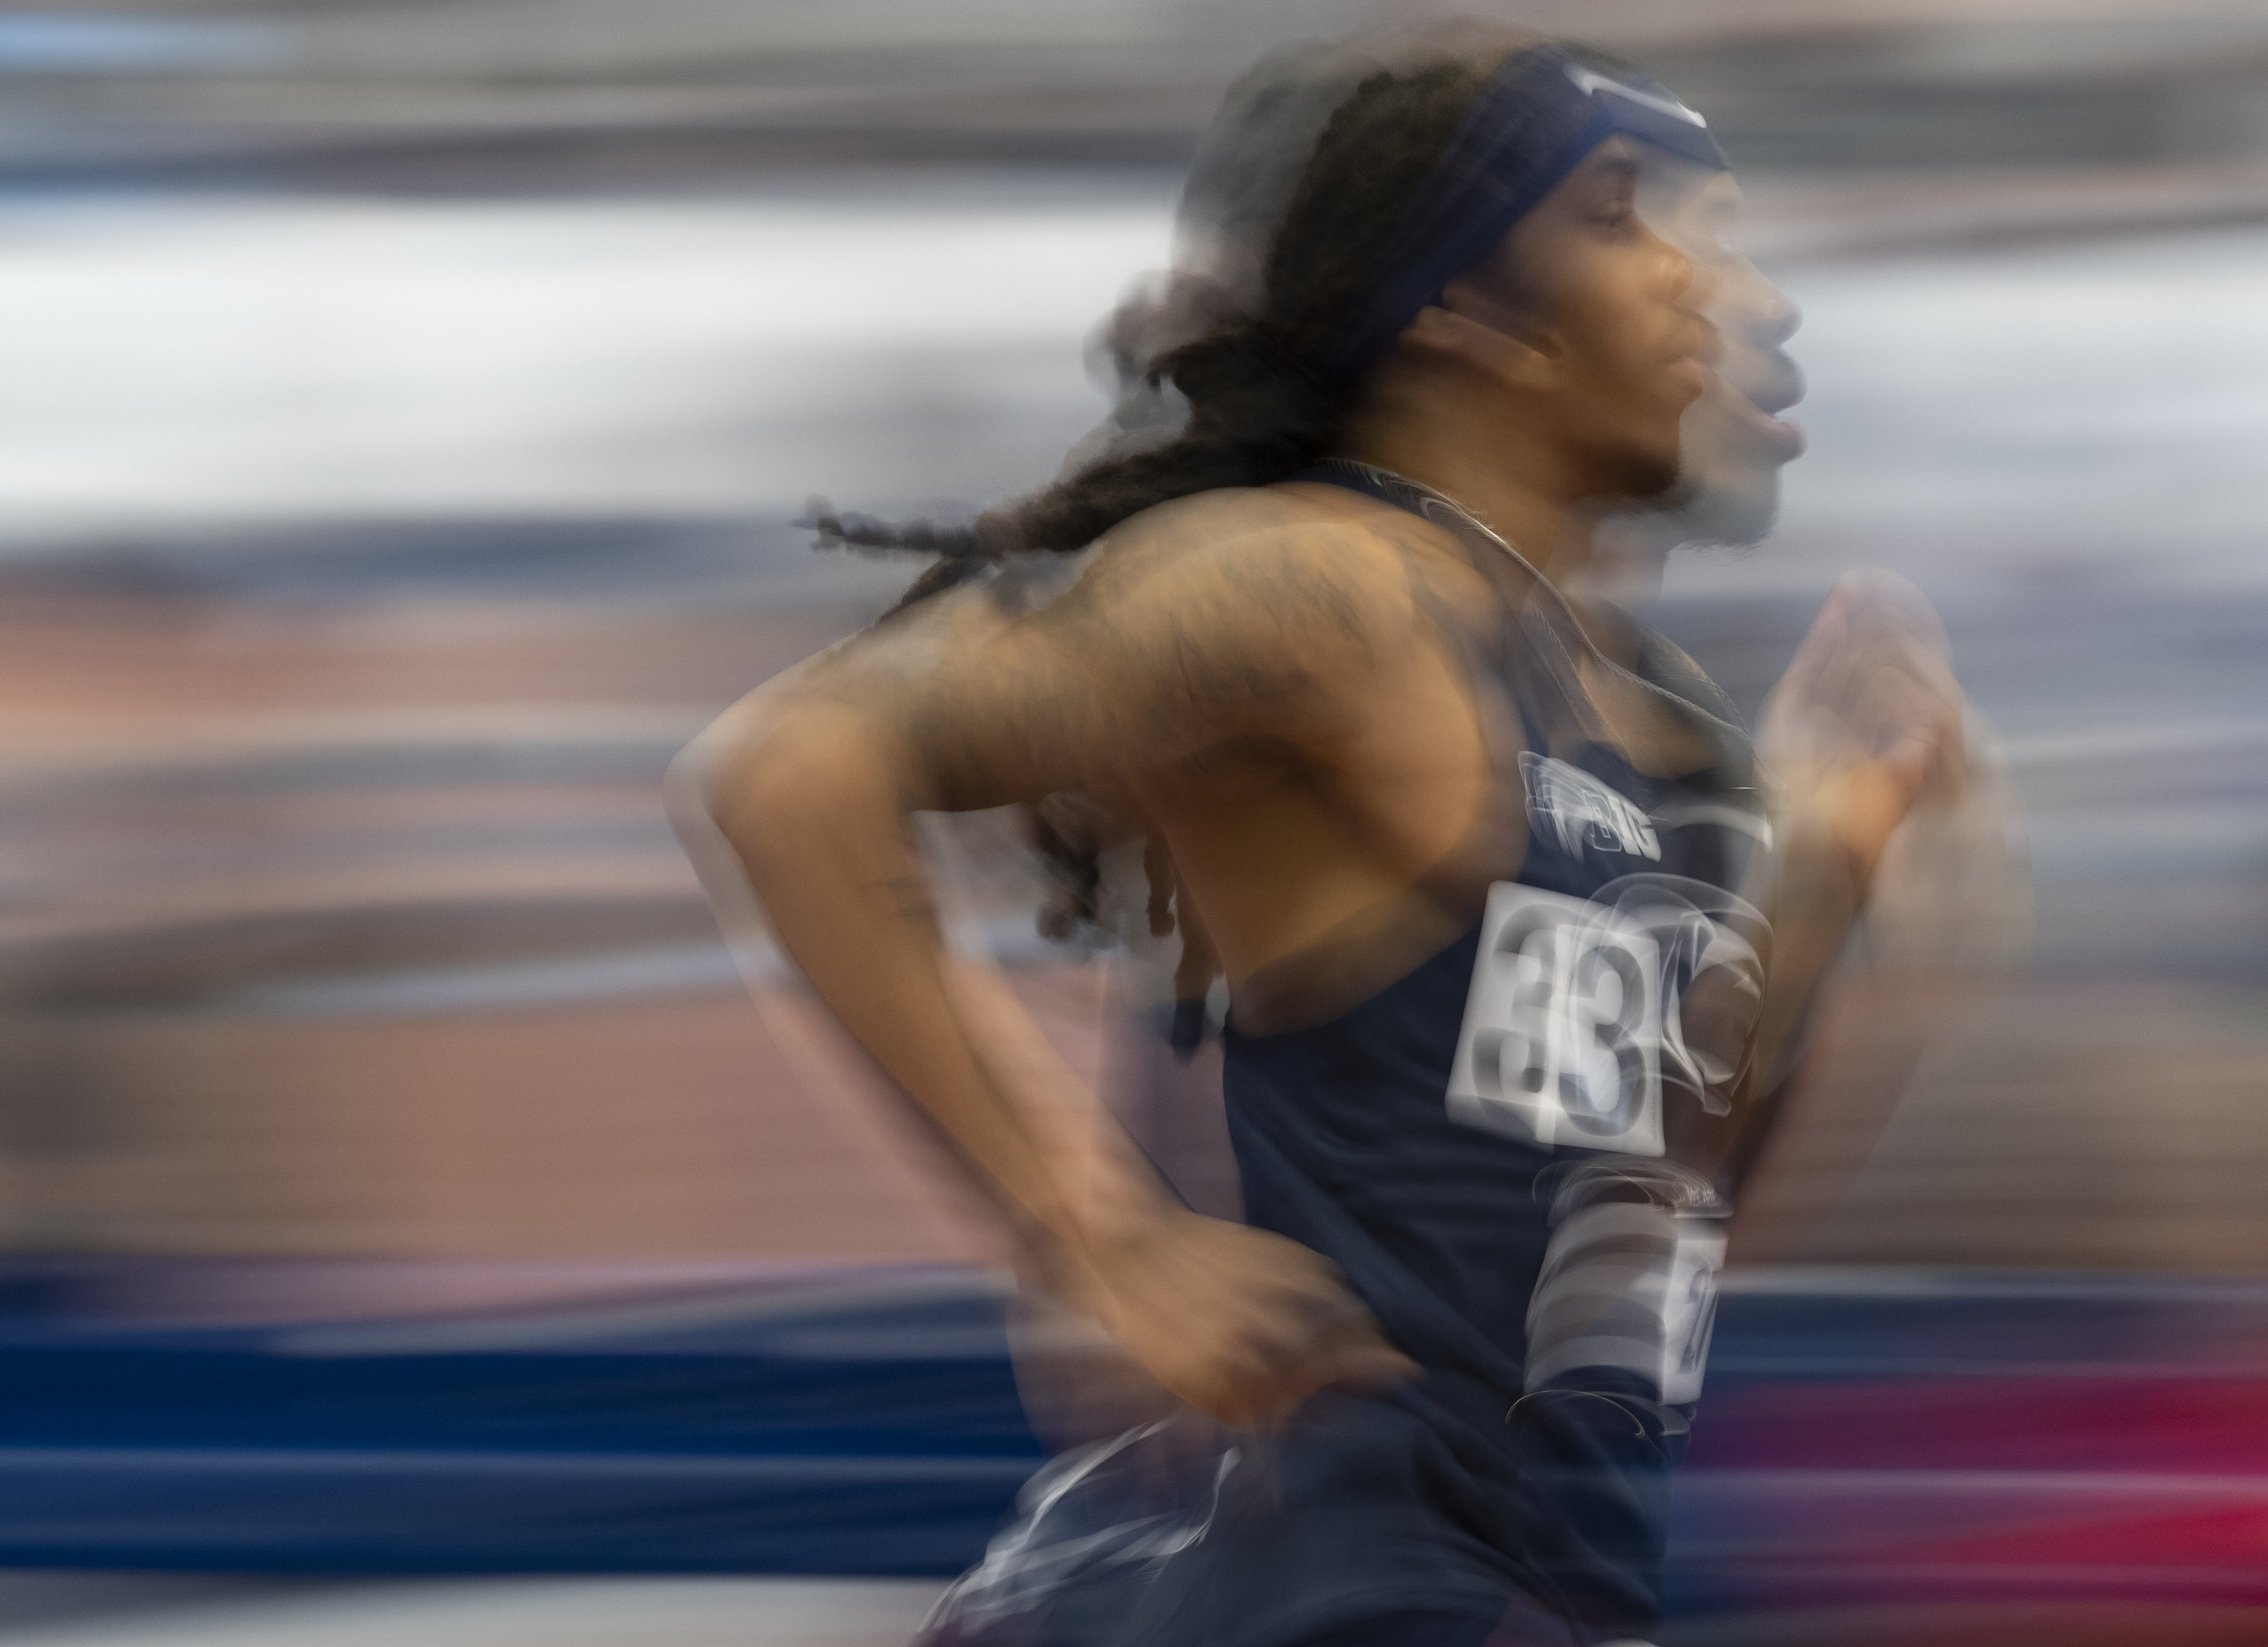 Runner Gary Ross runs in the 600 meter race during the Nittany Lion Challenge at the Horace Ashenfelter III Indoor Track on Saturday, Jan. 12, 2019. - Photo by: Noah Riffe